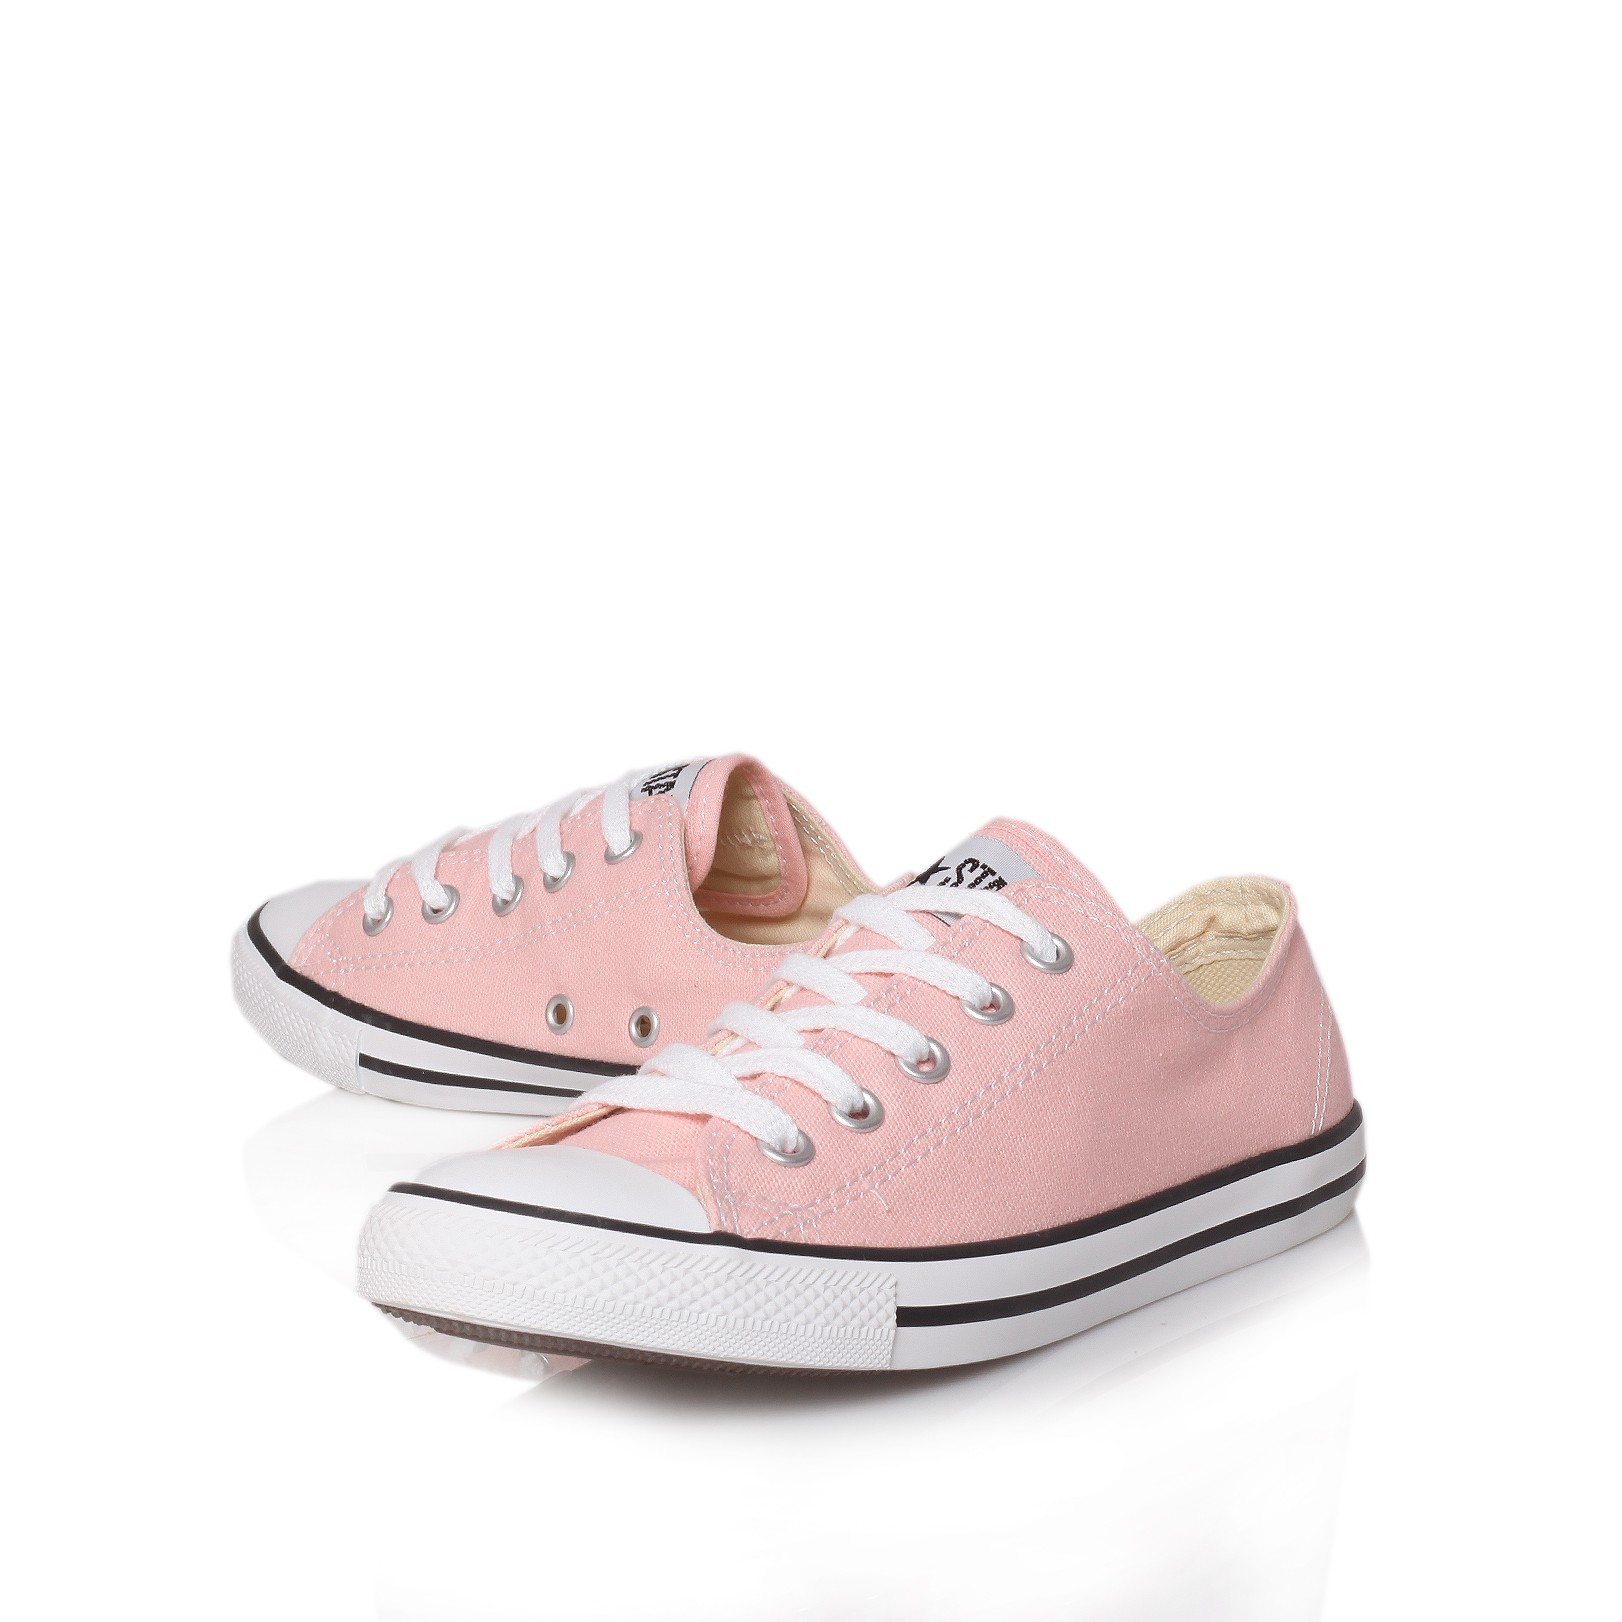 Converse Leather Danity Lace Shoes